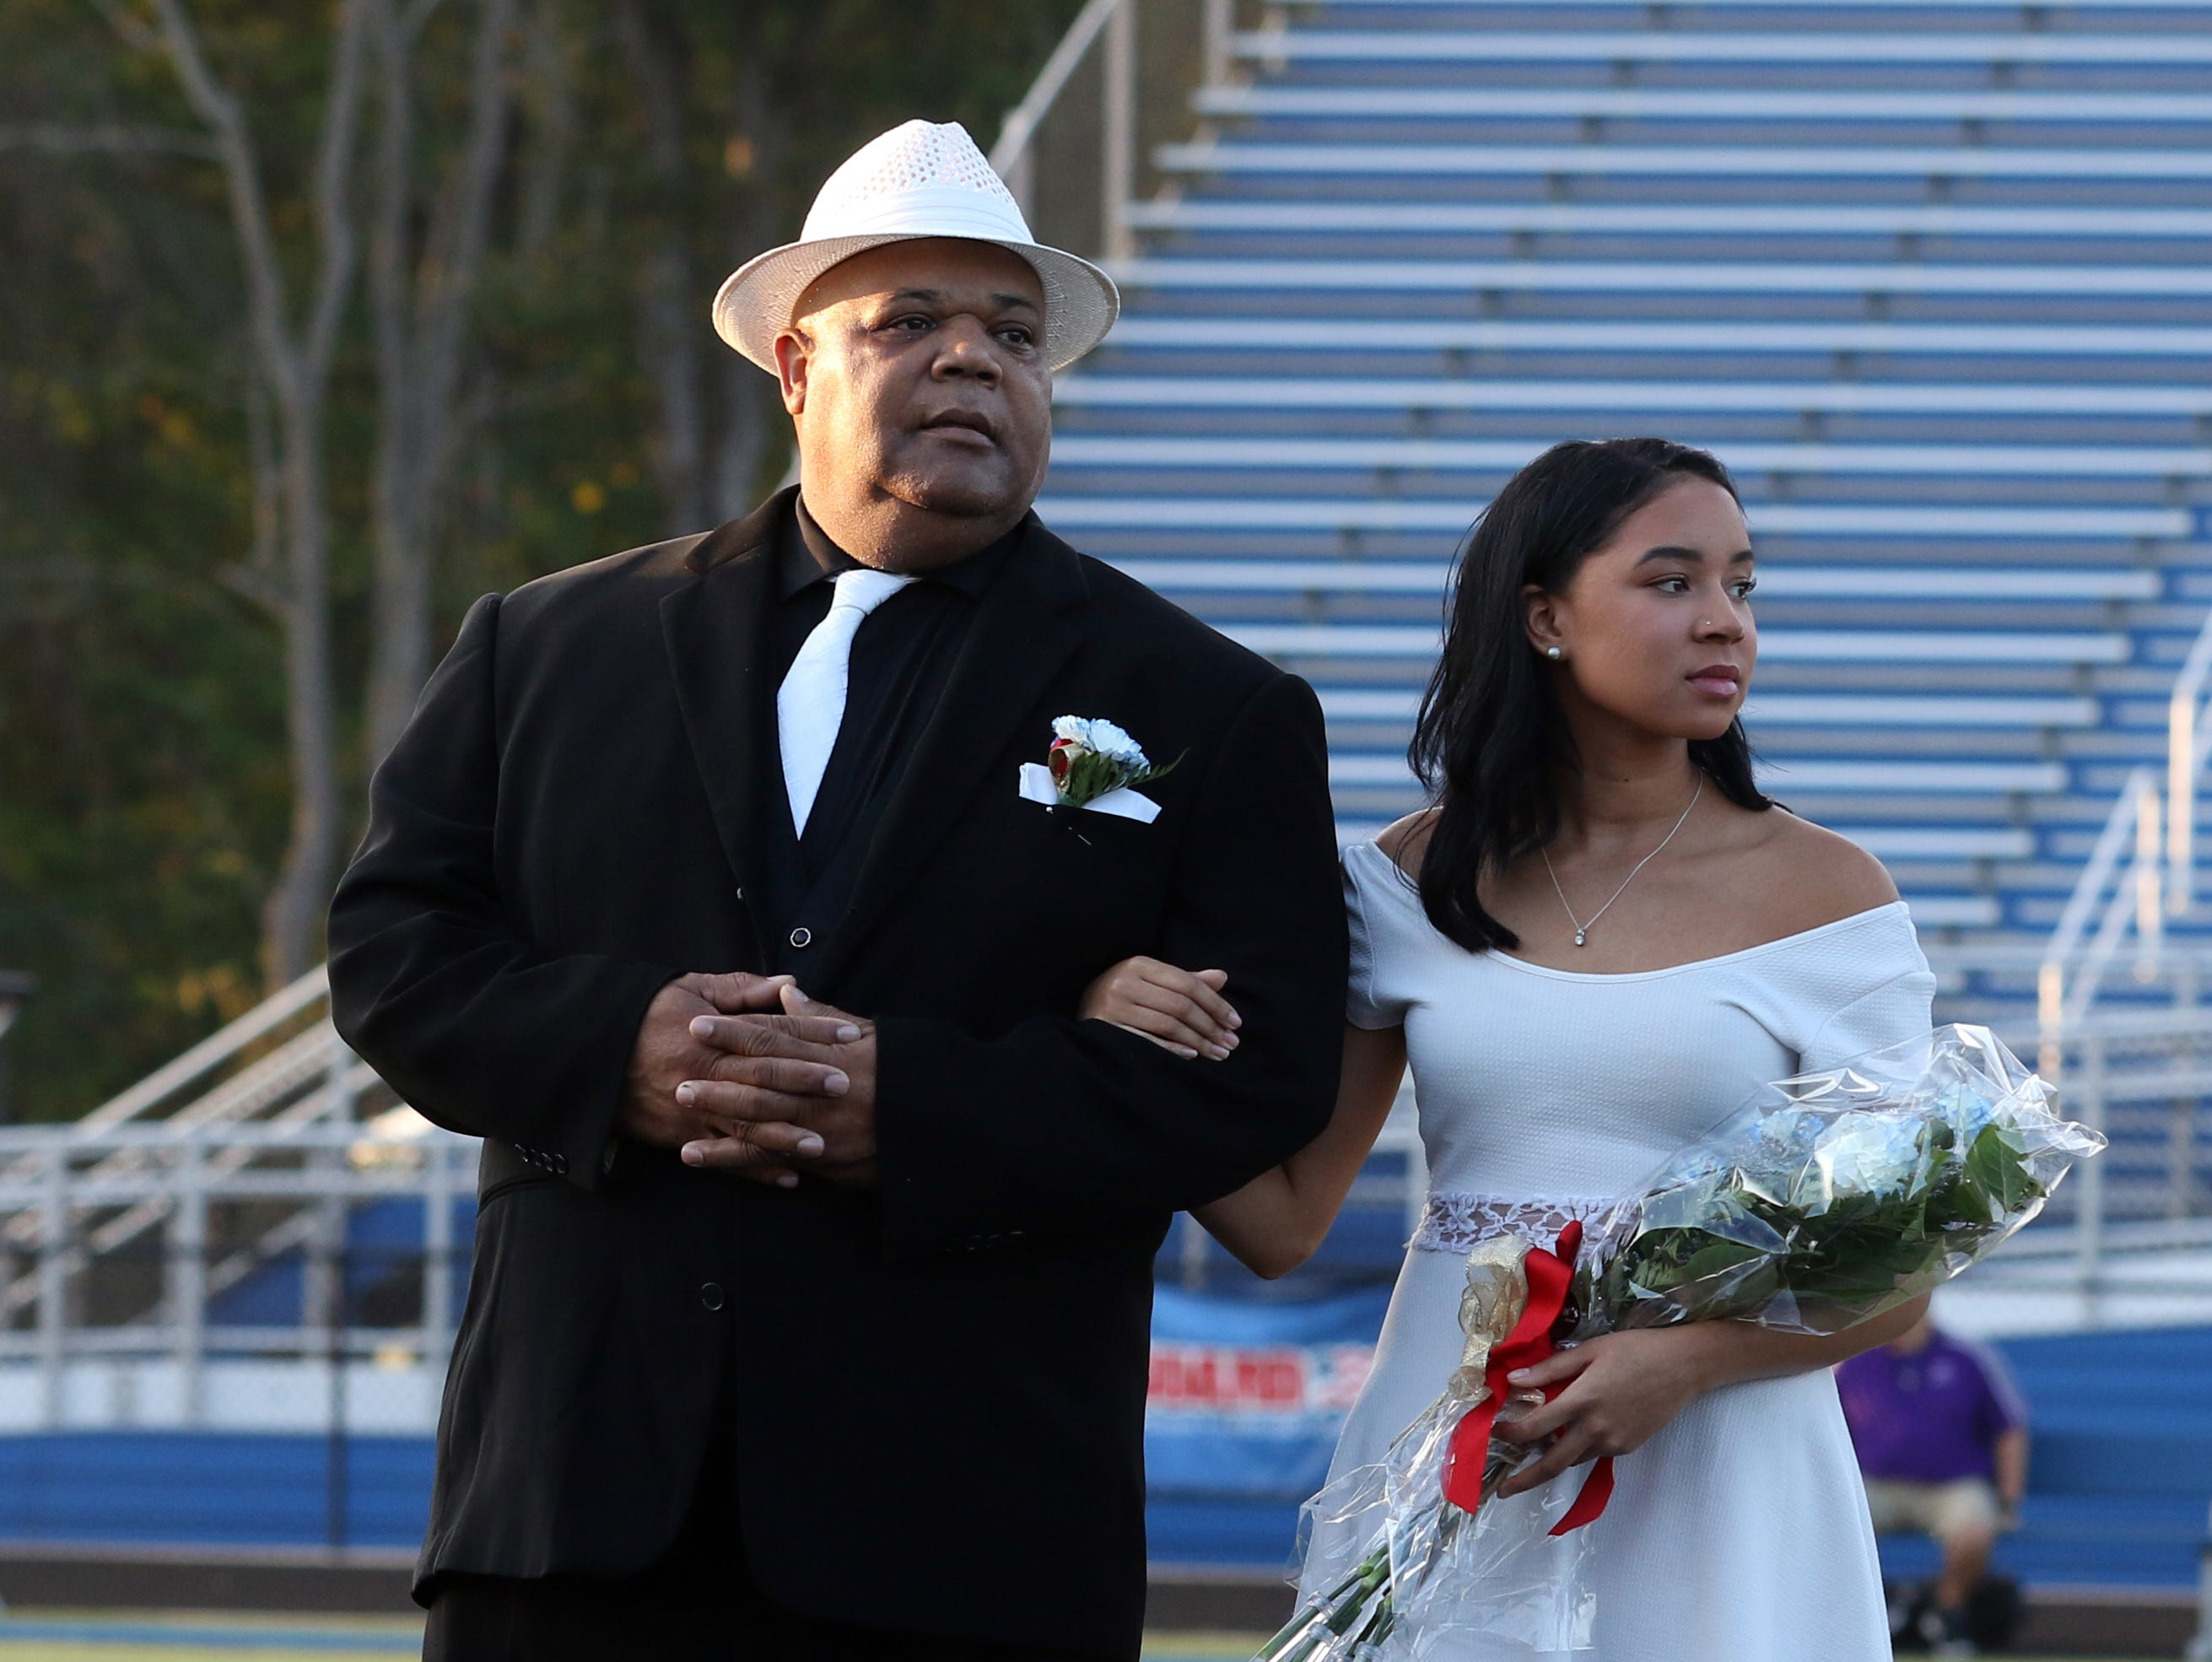 Senior attendant Shalen Johnson and her father Keith Wyatt.